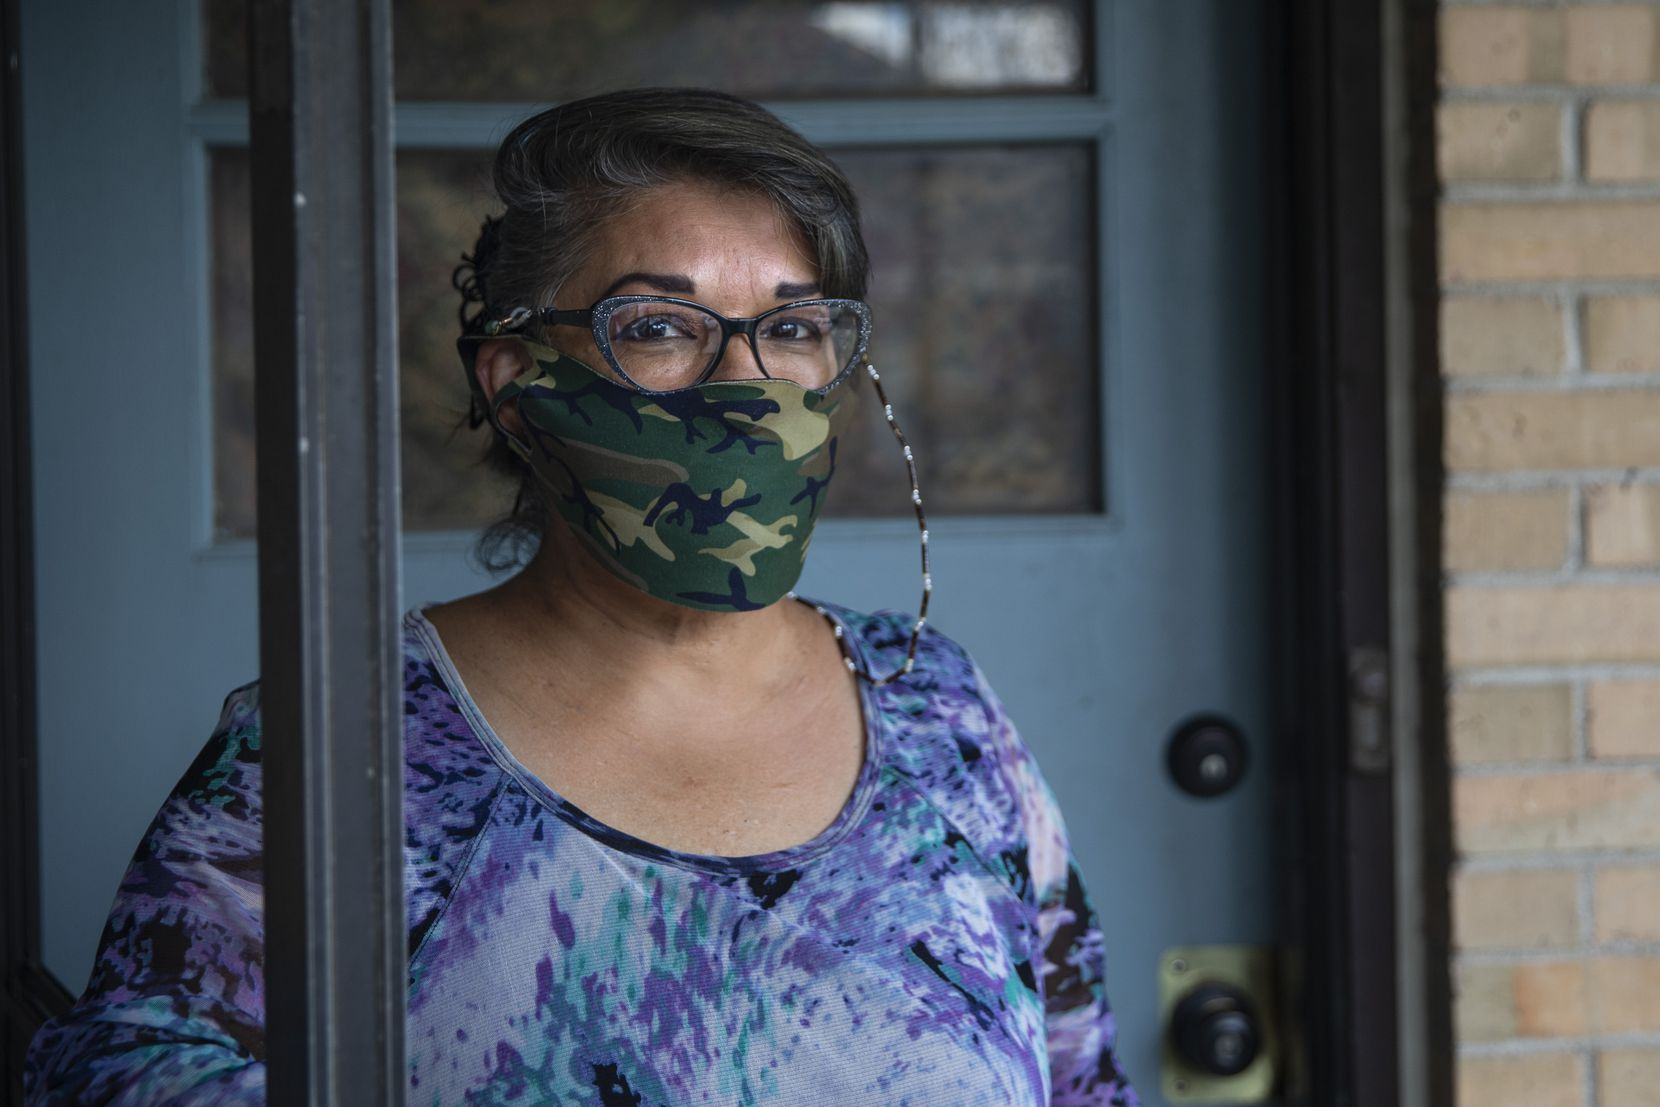 EneDina Rogers of Dallas is one of the many North Texans who are fearful of being evicted from their homes because of the pandemic's strain on the economy.